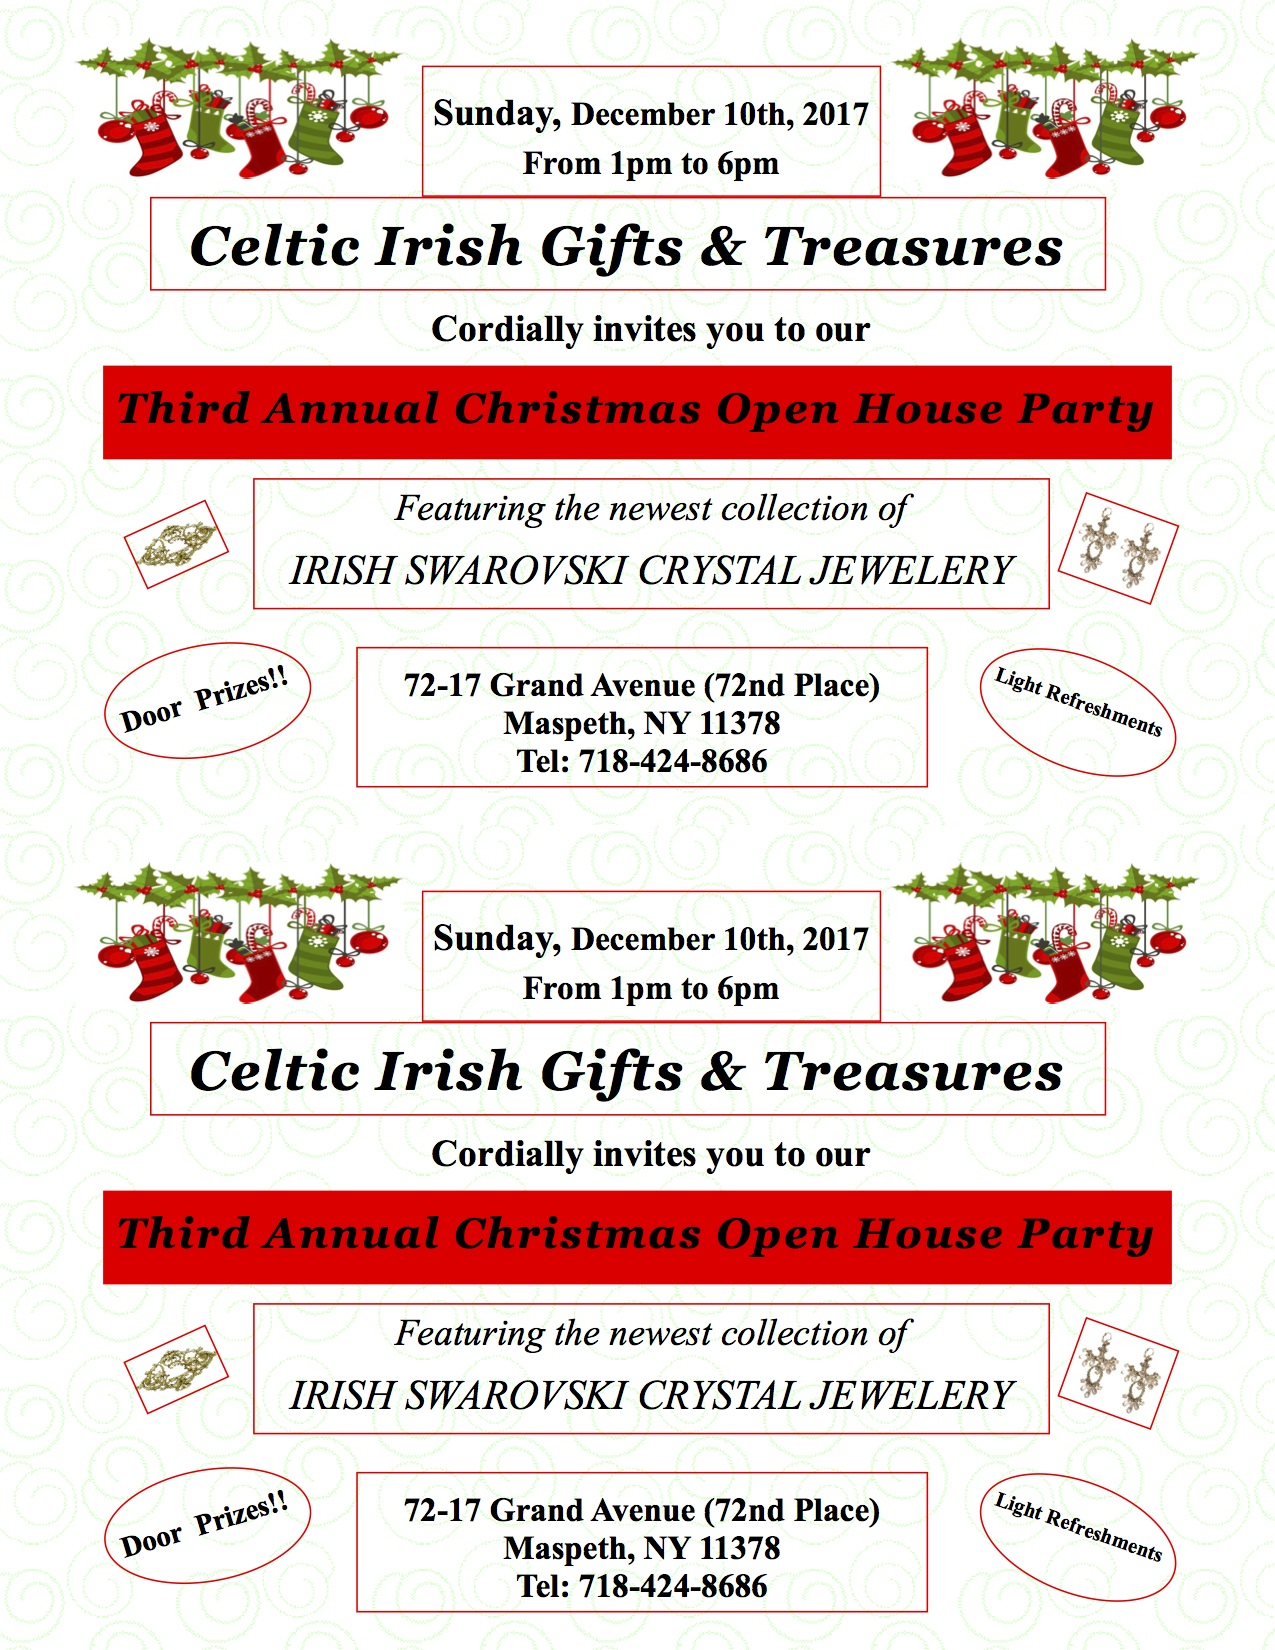 Celtic-Irish-Gifts-Treasures-Christmas-Party-2017